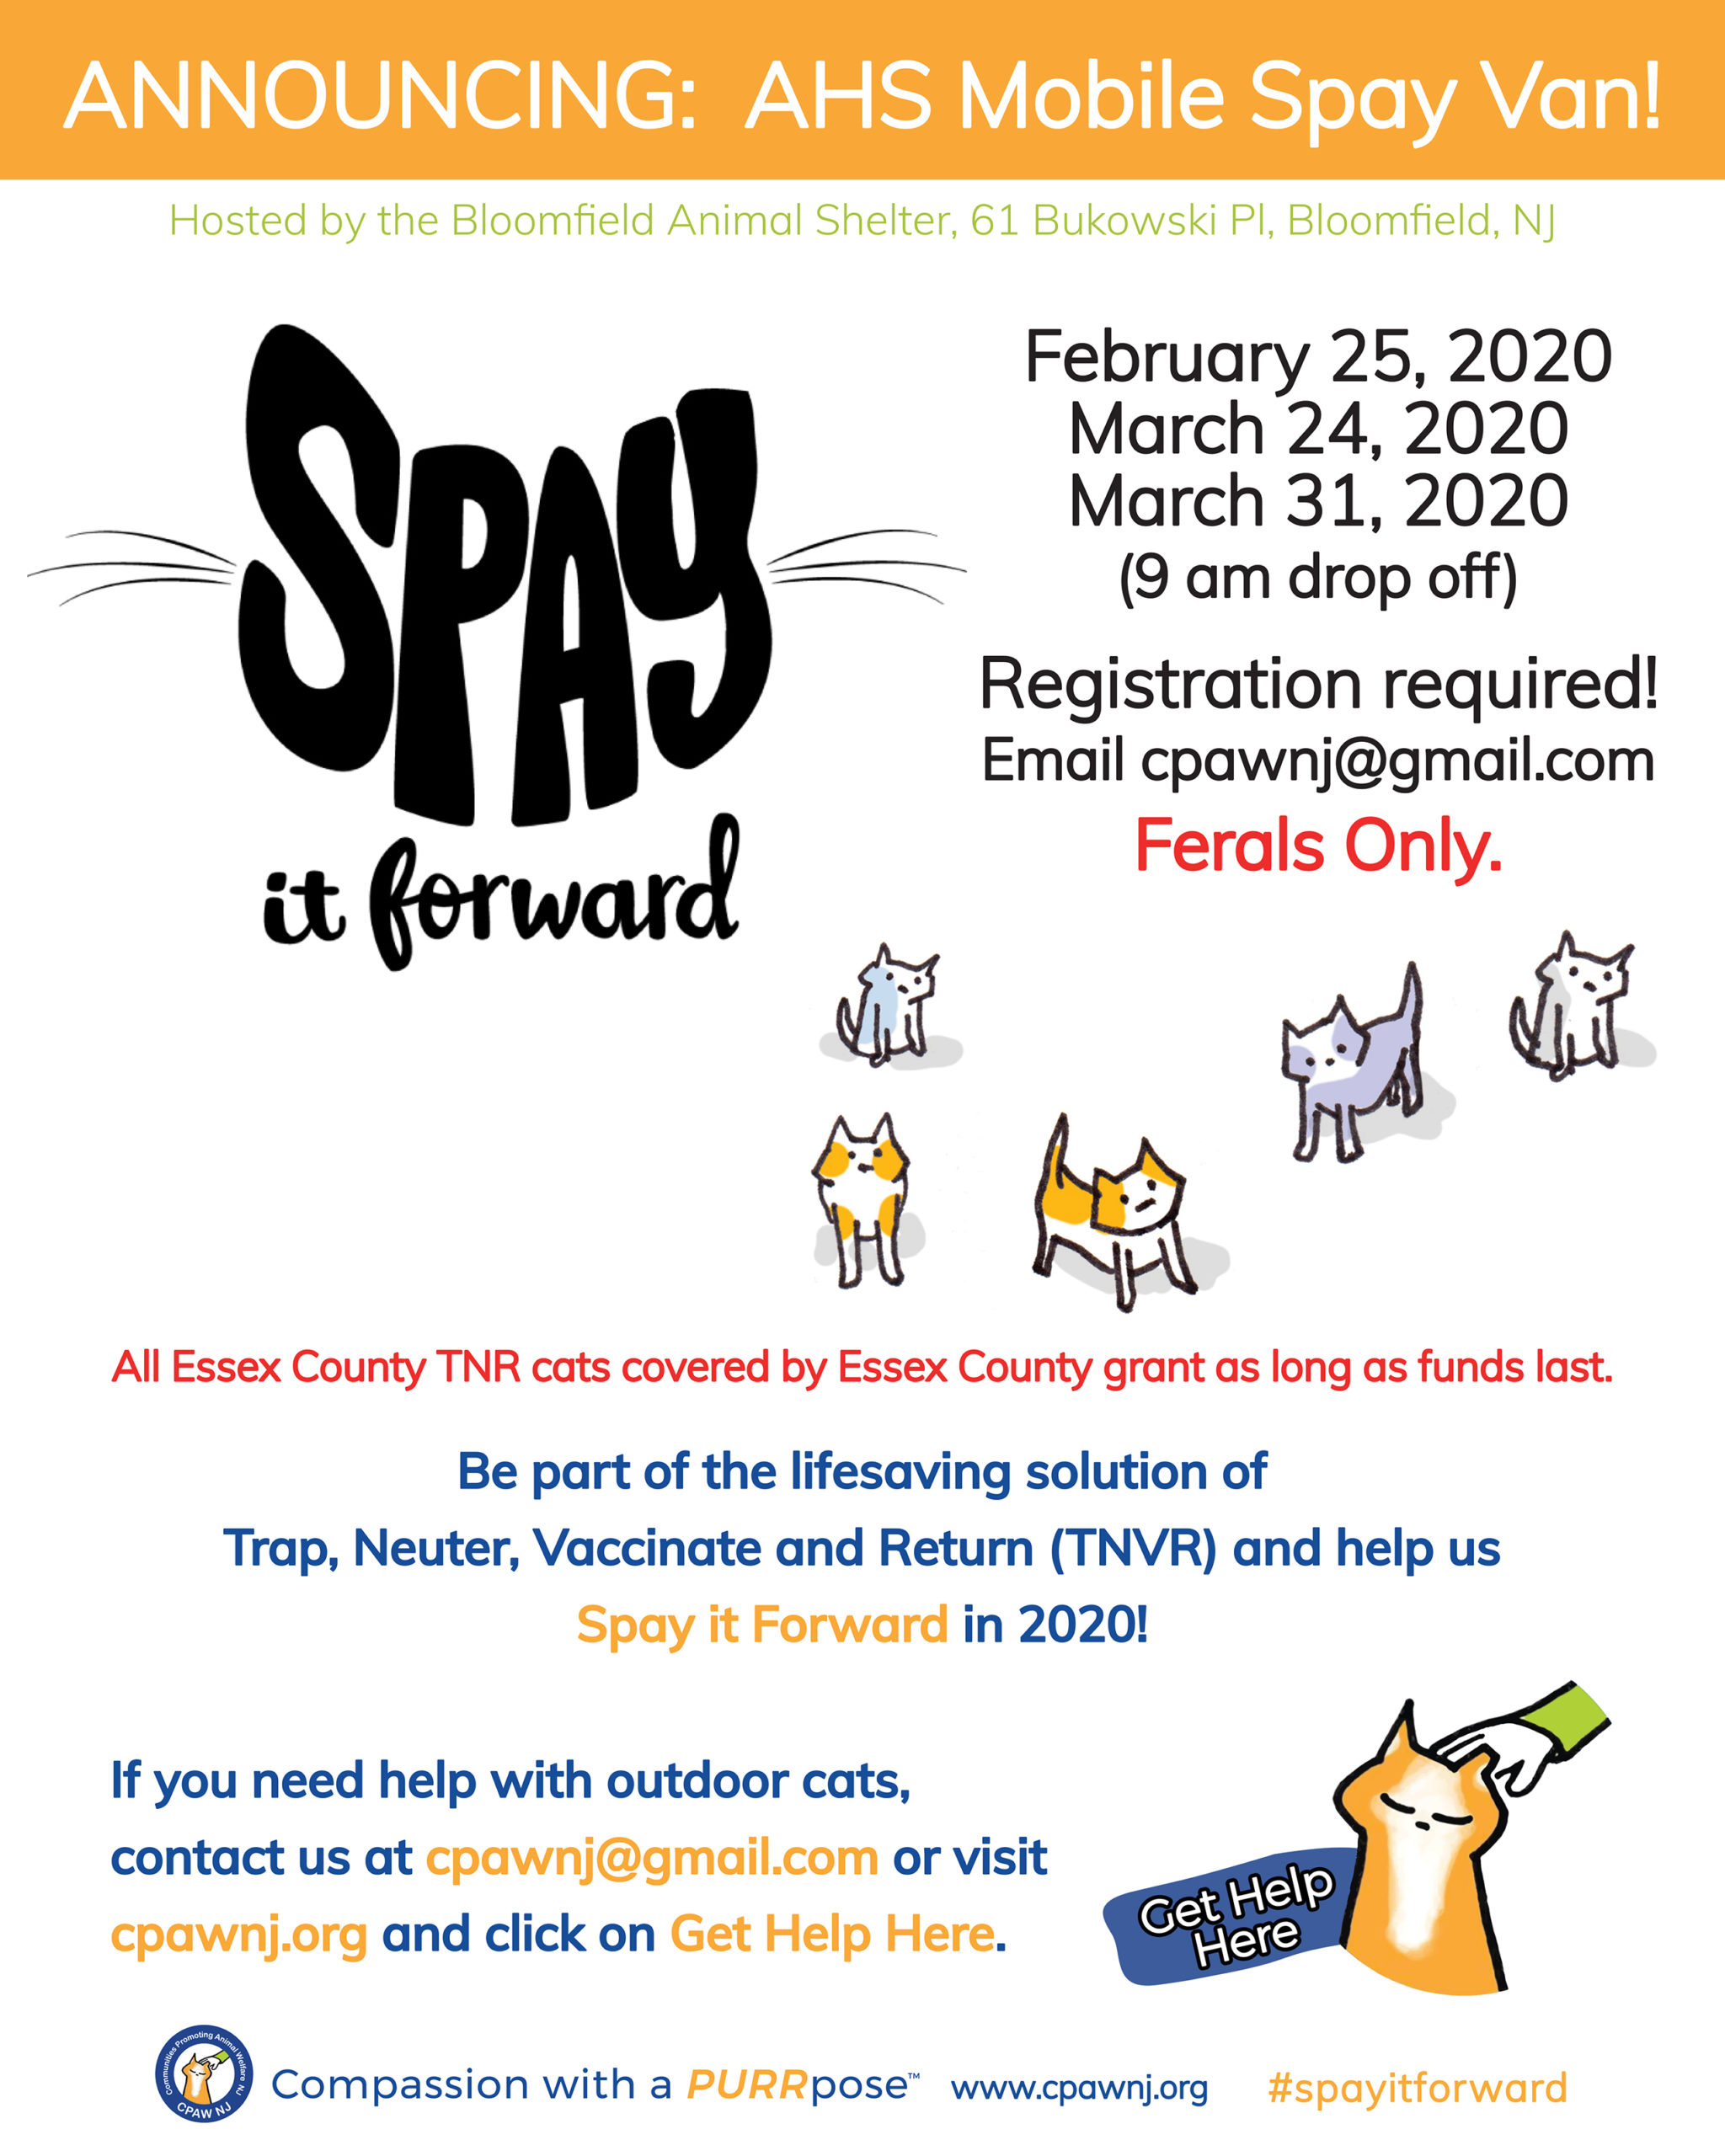 Bloomfield_Spay it Forward_February_March 2020 Spay Van